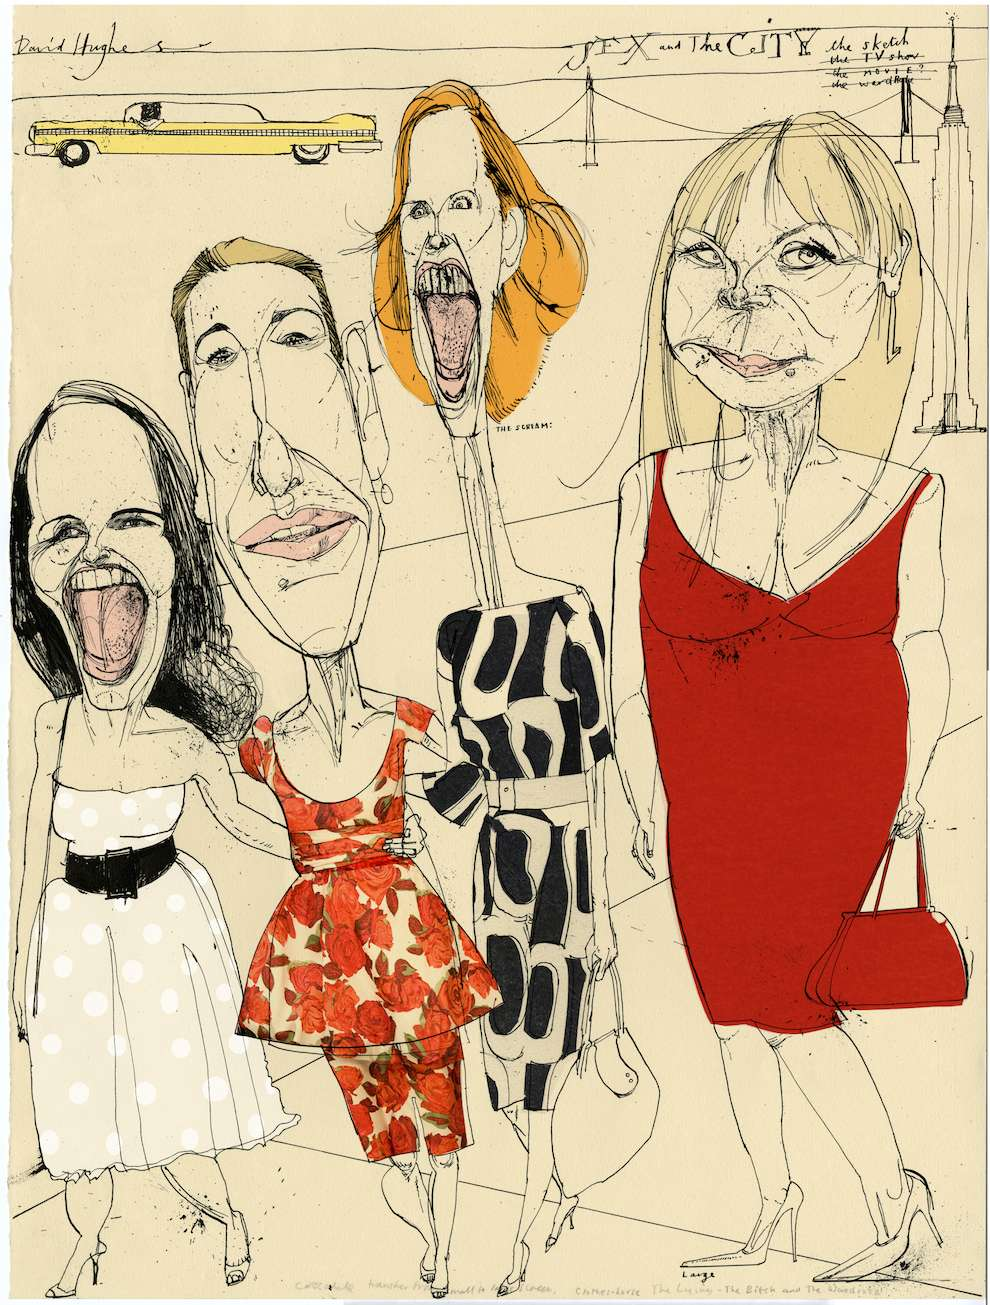 David Hughes, Caricatural portrait of sex & the city characters